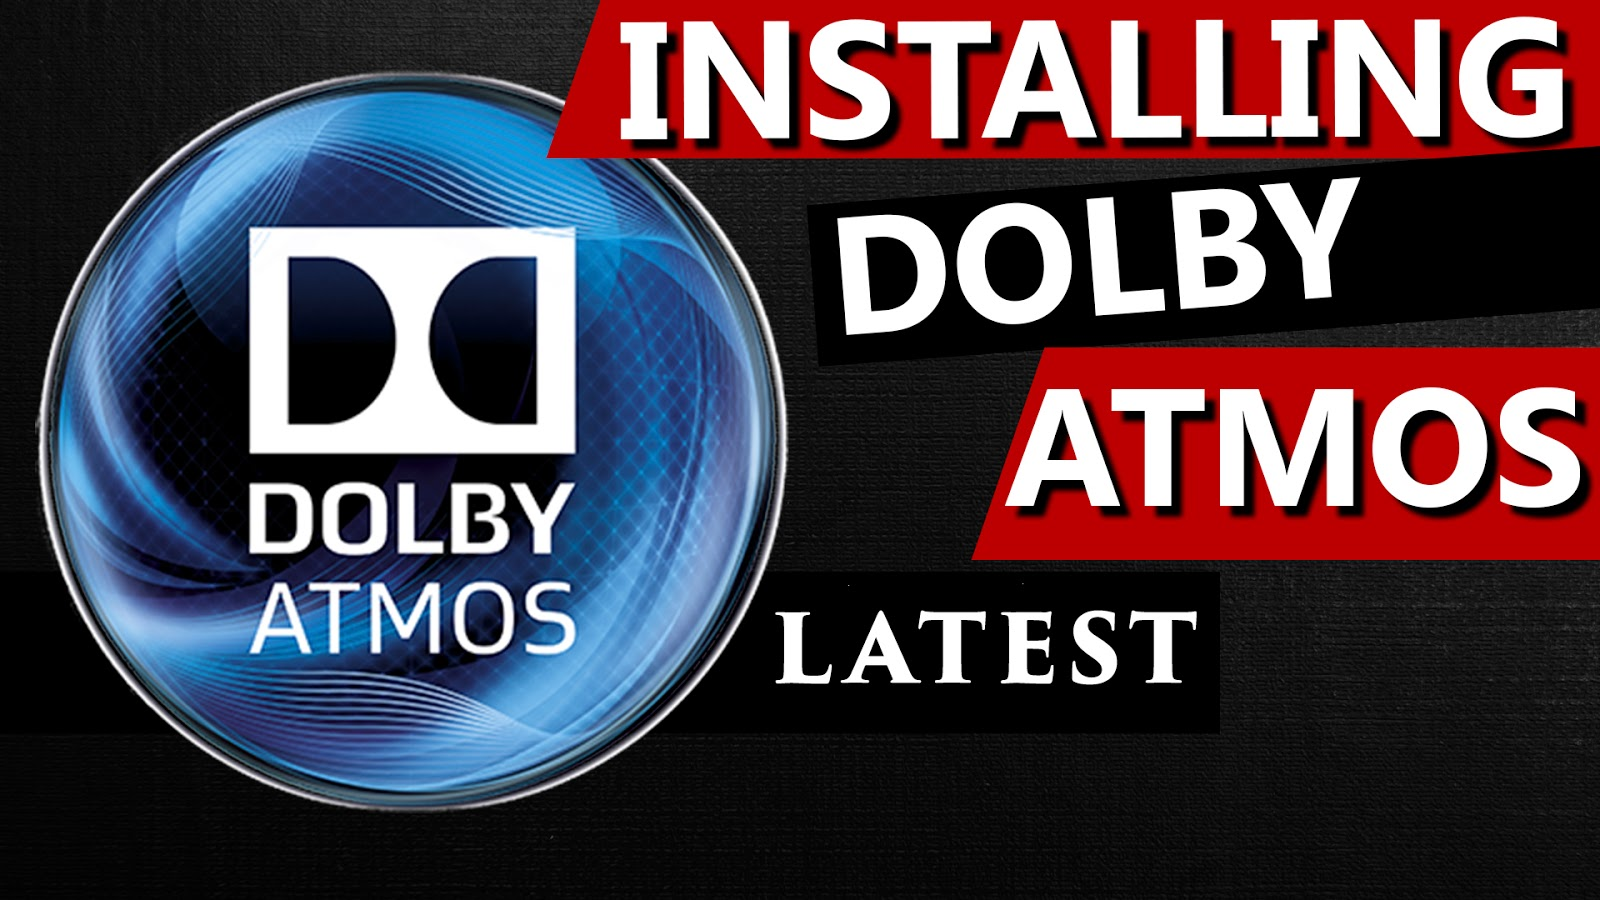 🔥 Dolby atmos apk download pc | Dolby Atmos APK Download Latest